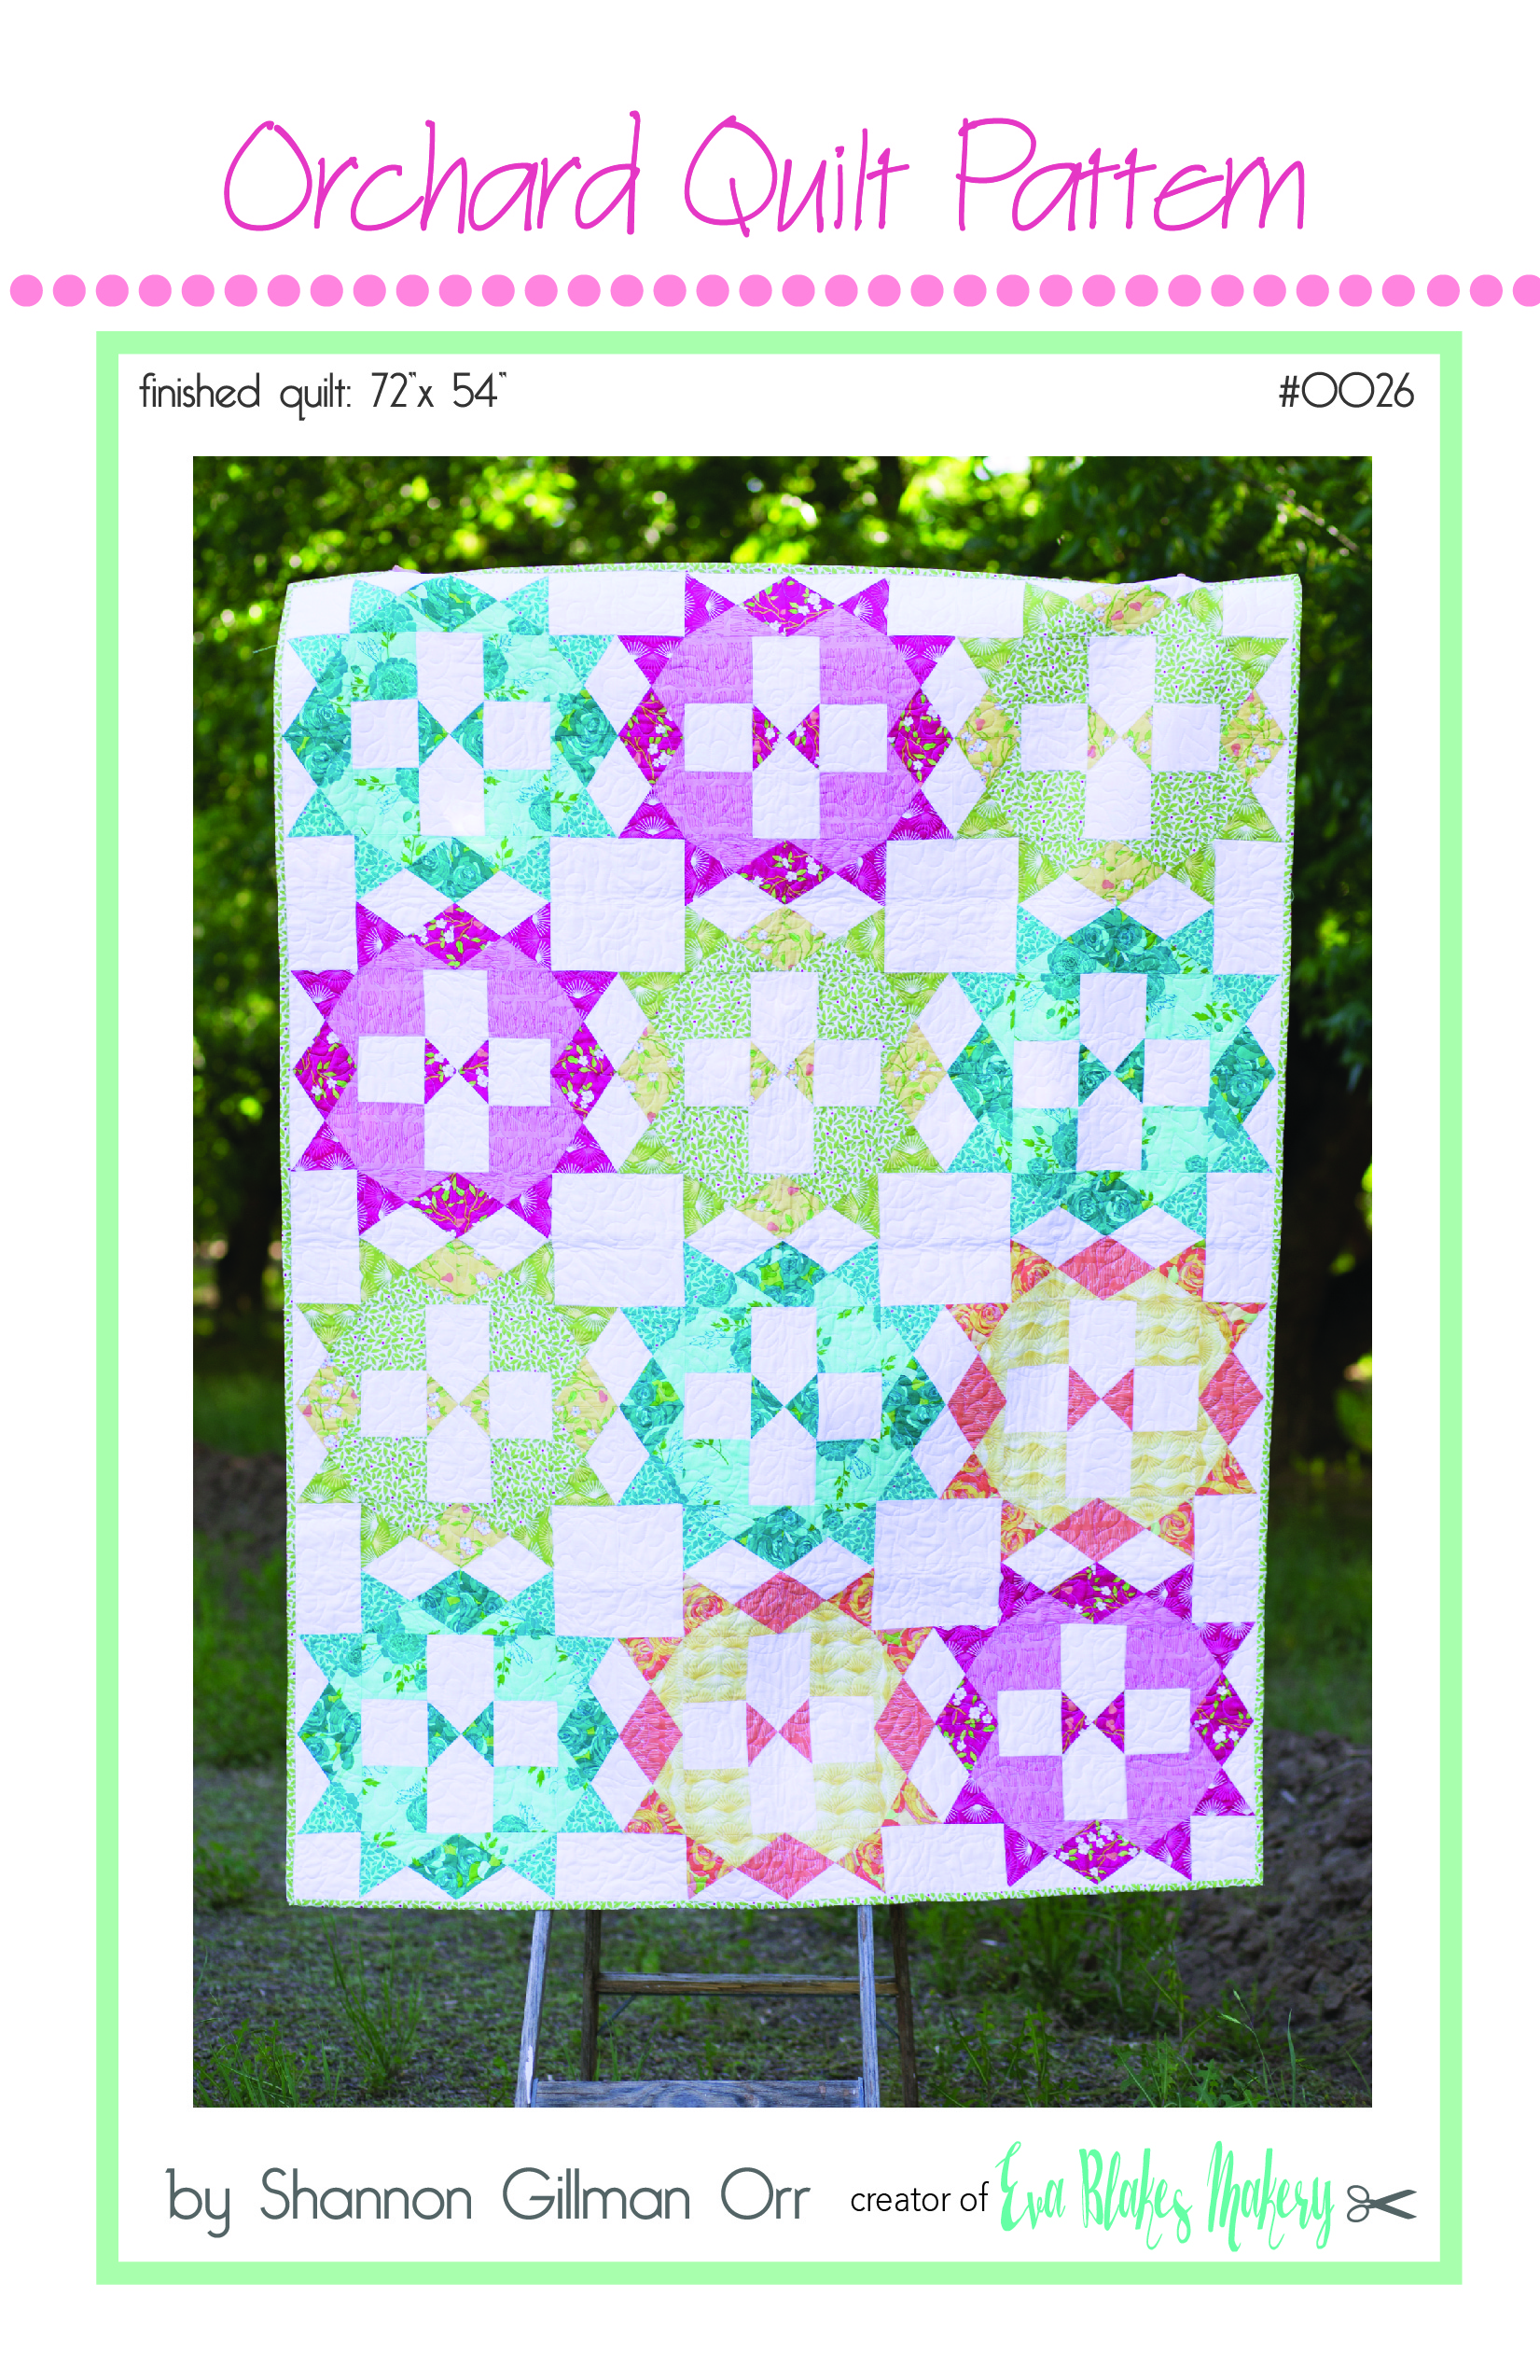 Orchard Quilt_Artboard 1.jpg